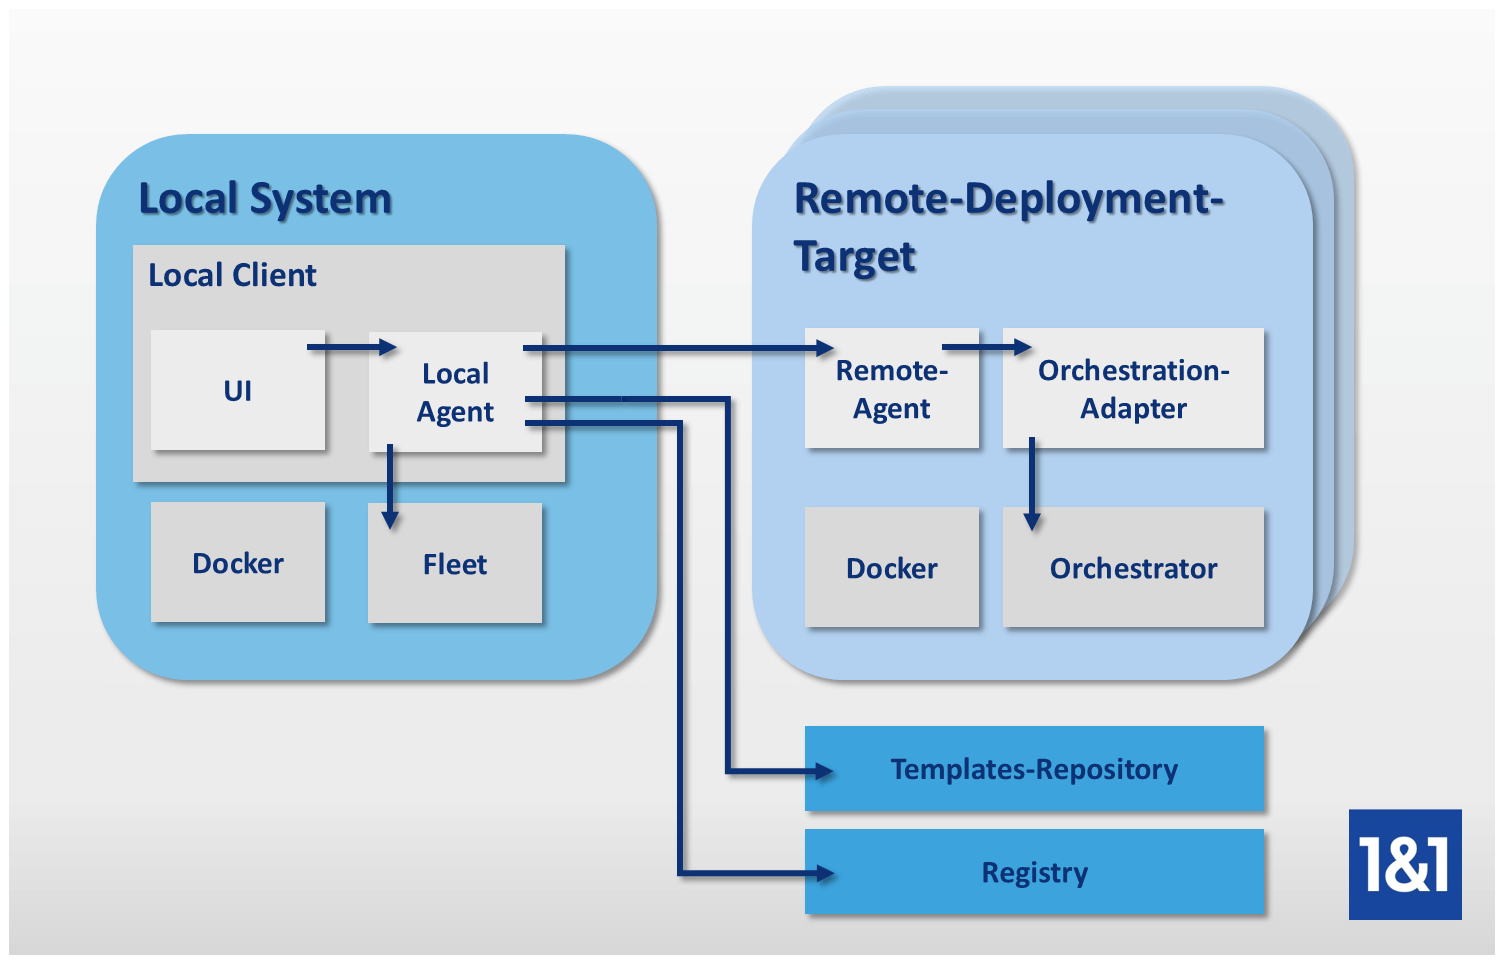 Docker Tools | The container platform eco system - 1&1